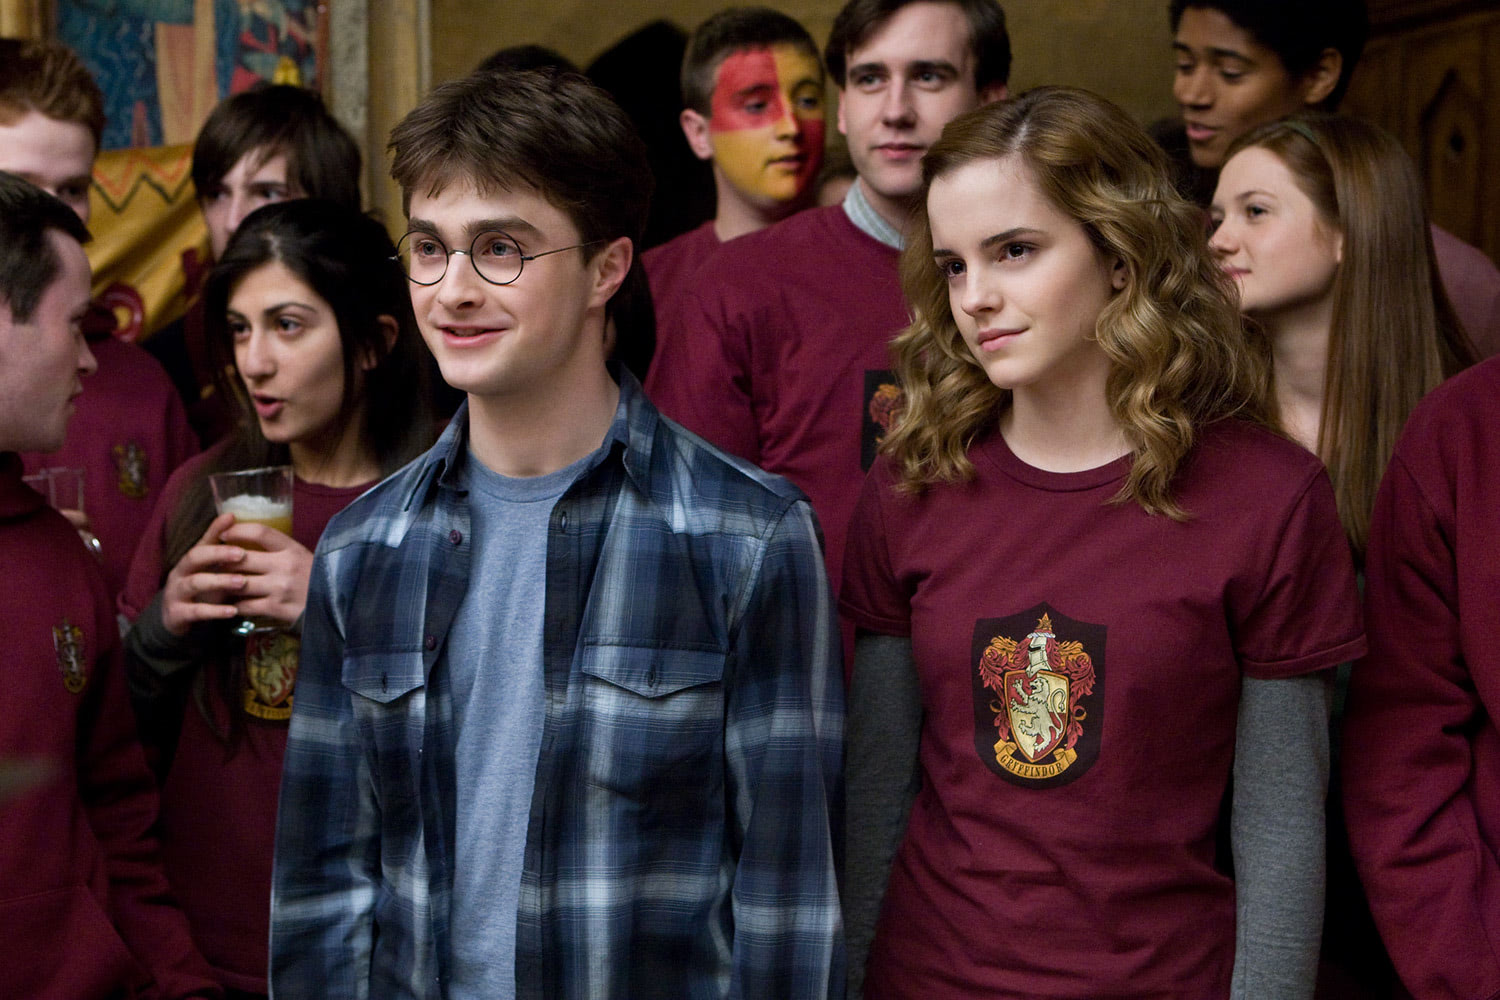 Harry and Hermione after Quidditch